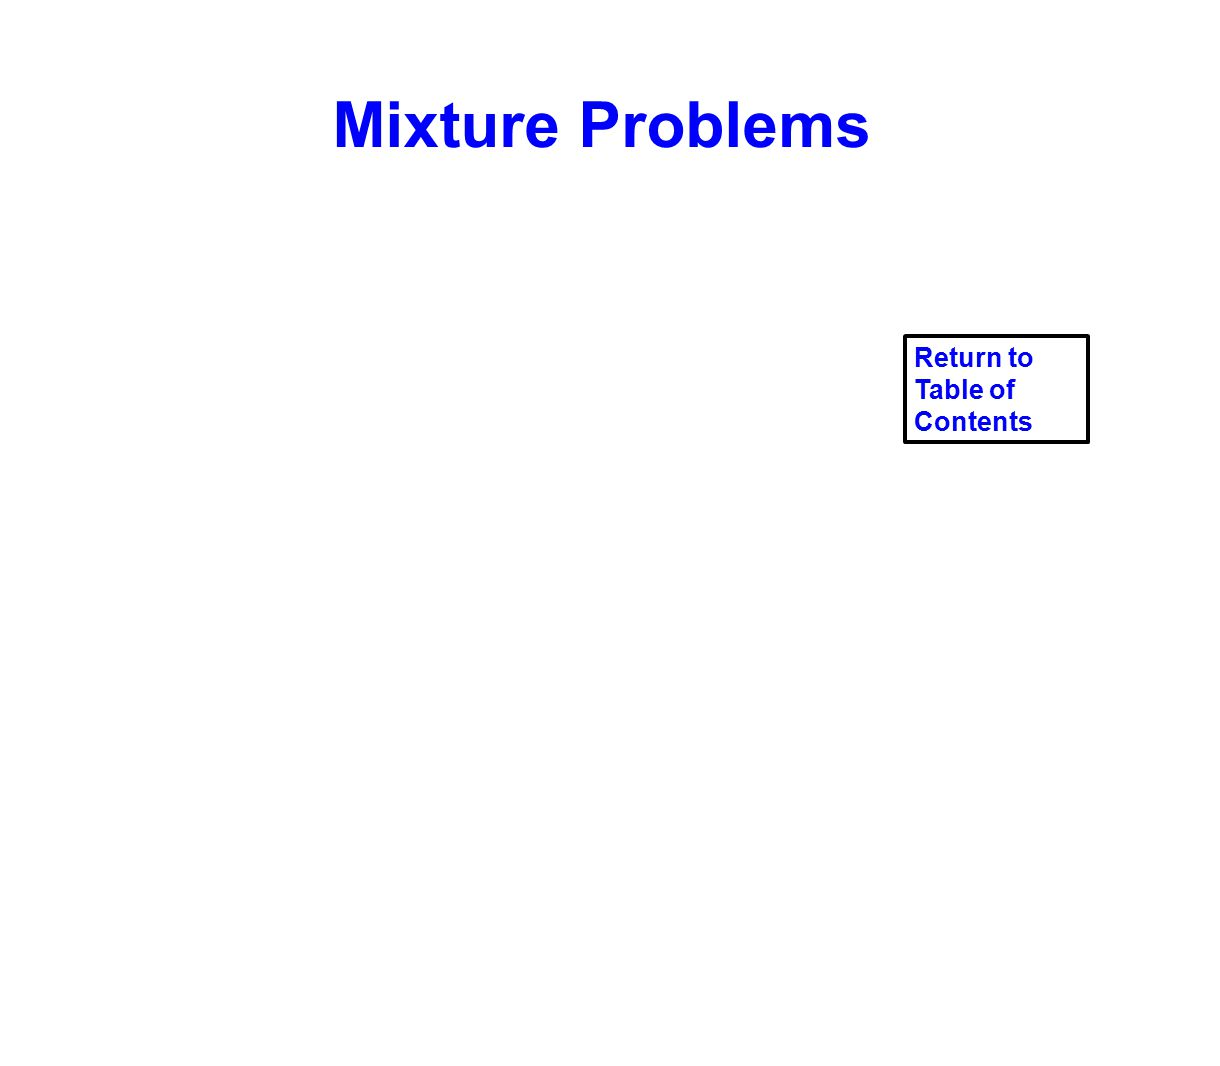 Mixture Problems Return to Table of Contents